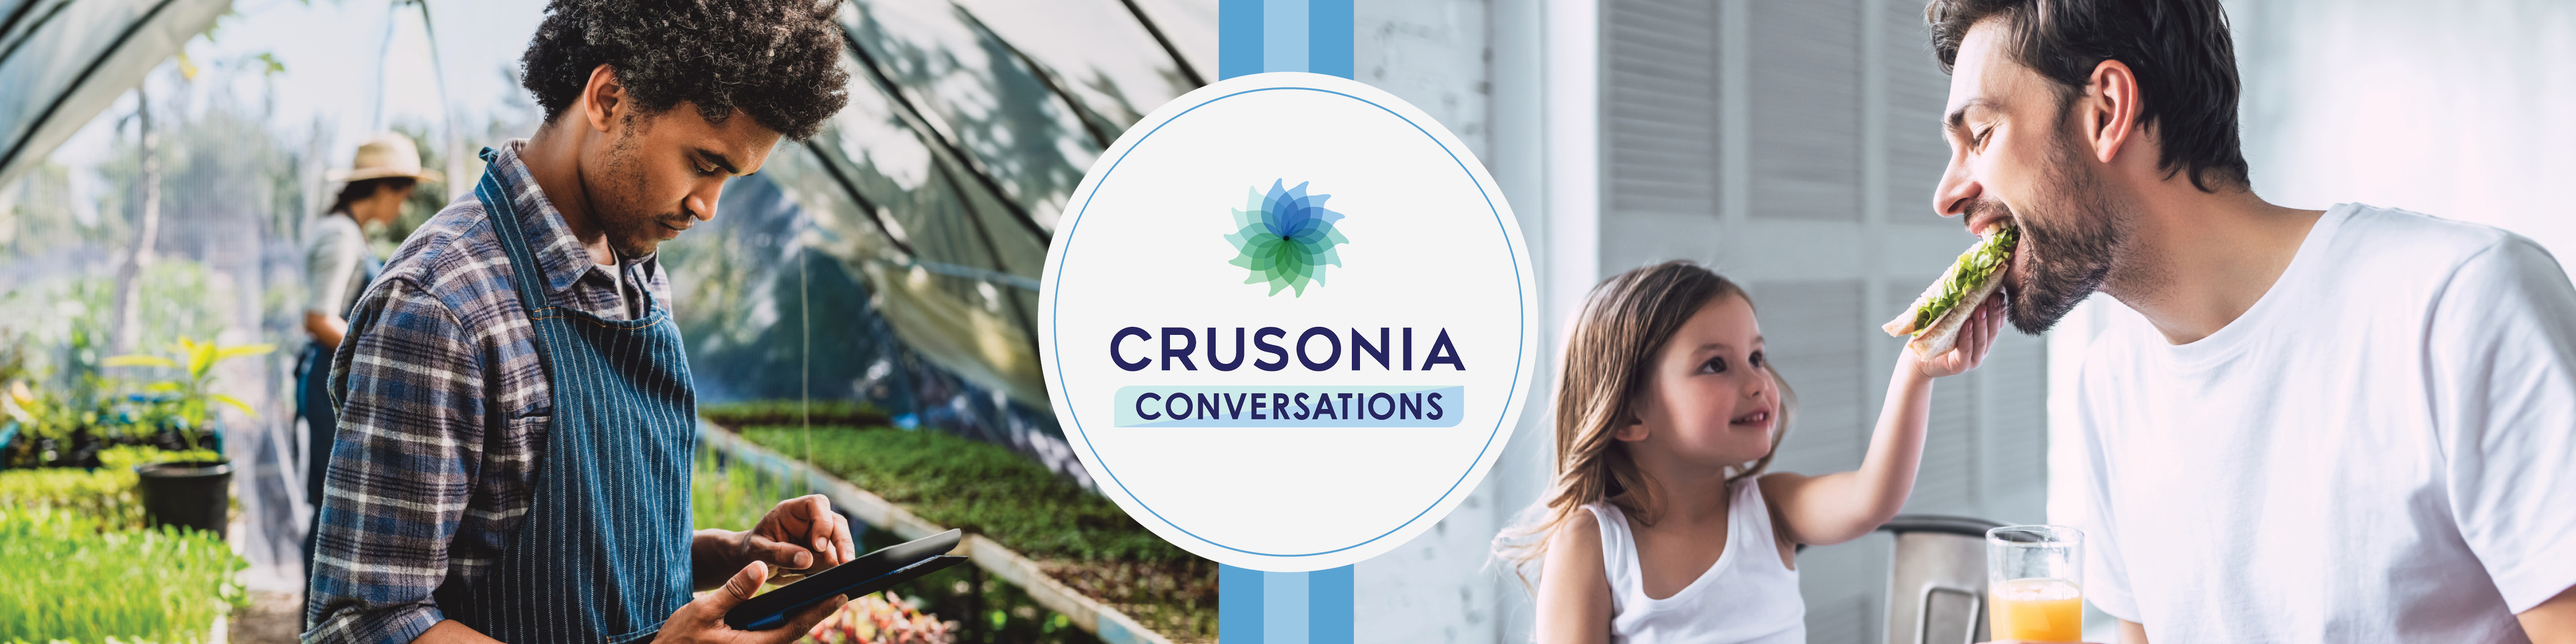 Crusonia-Conversations-Email-Banner